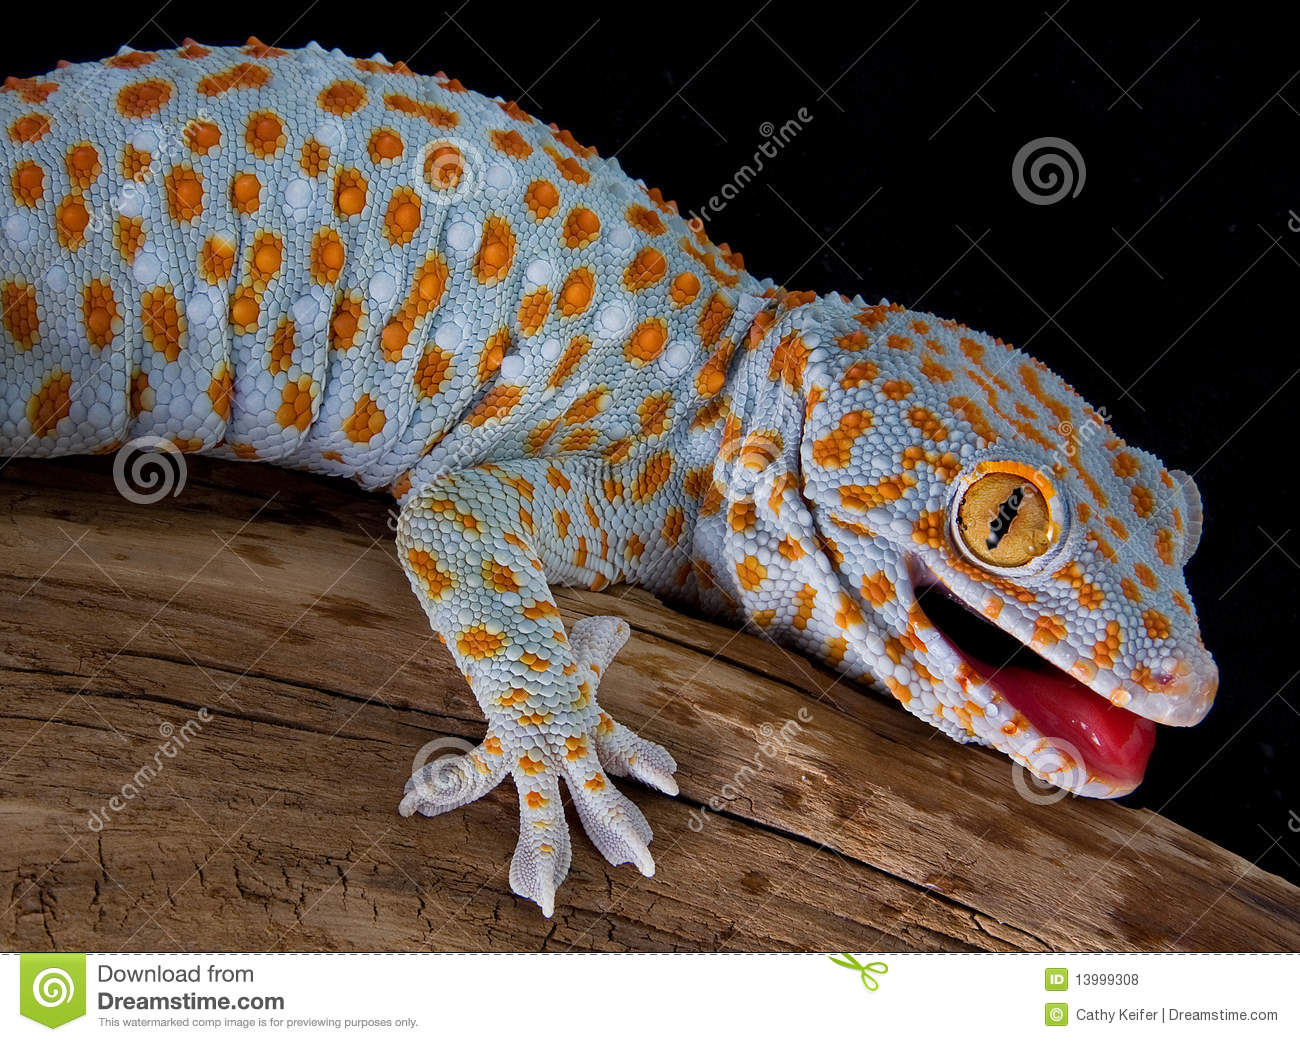 Tokay gecko with mouth open